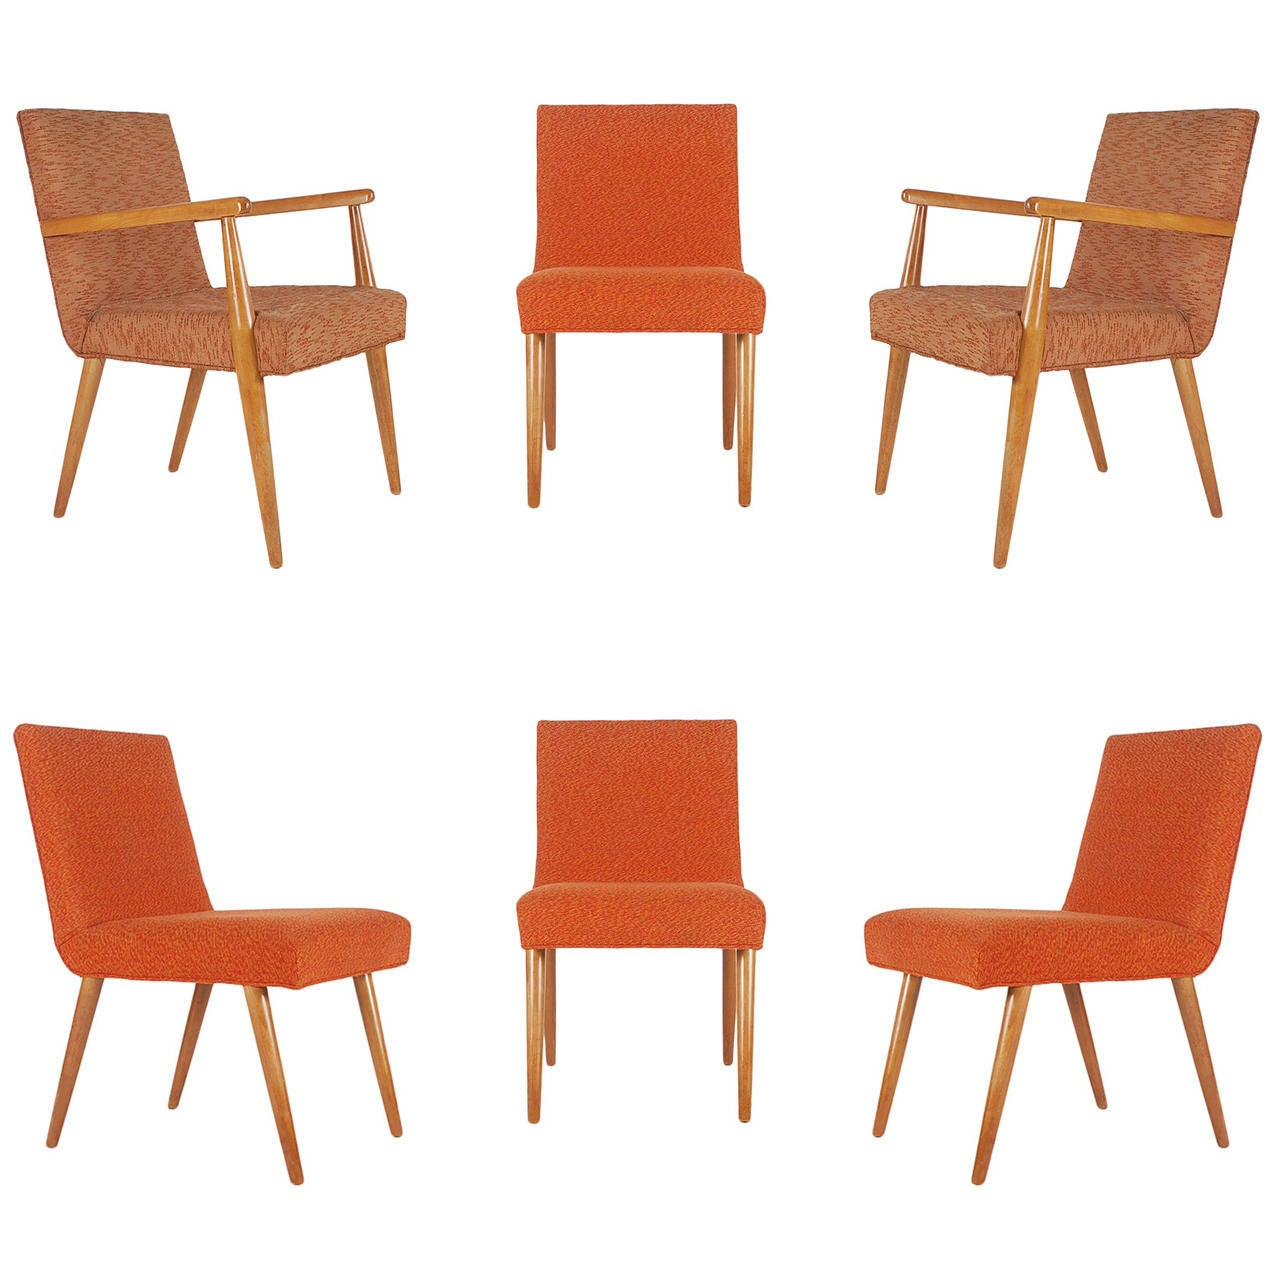 T.H. Robsjohn-Gibbings for Widdicomb Dining Chairs